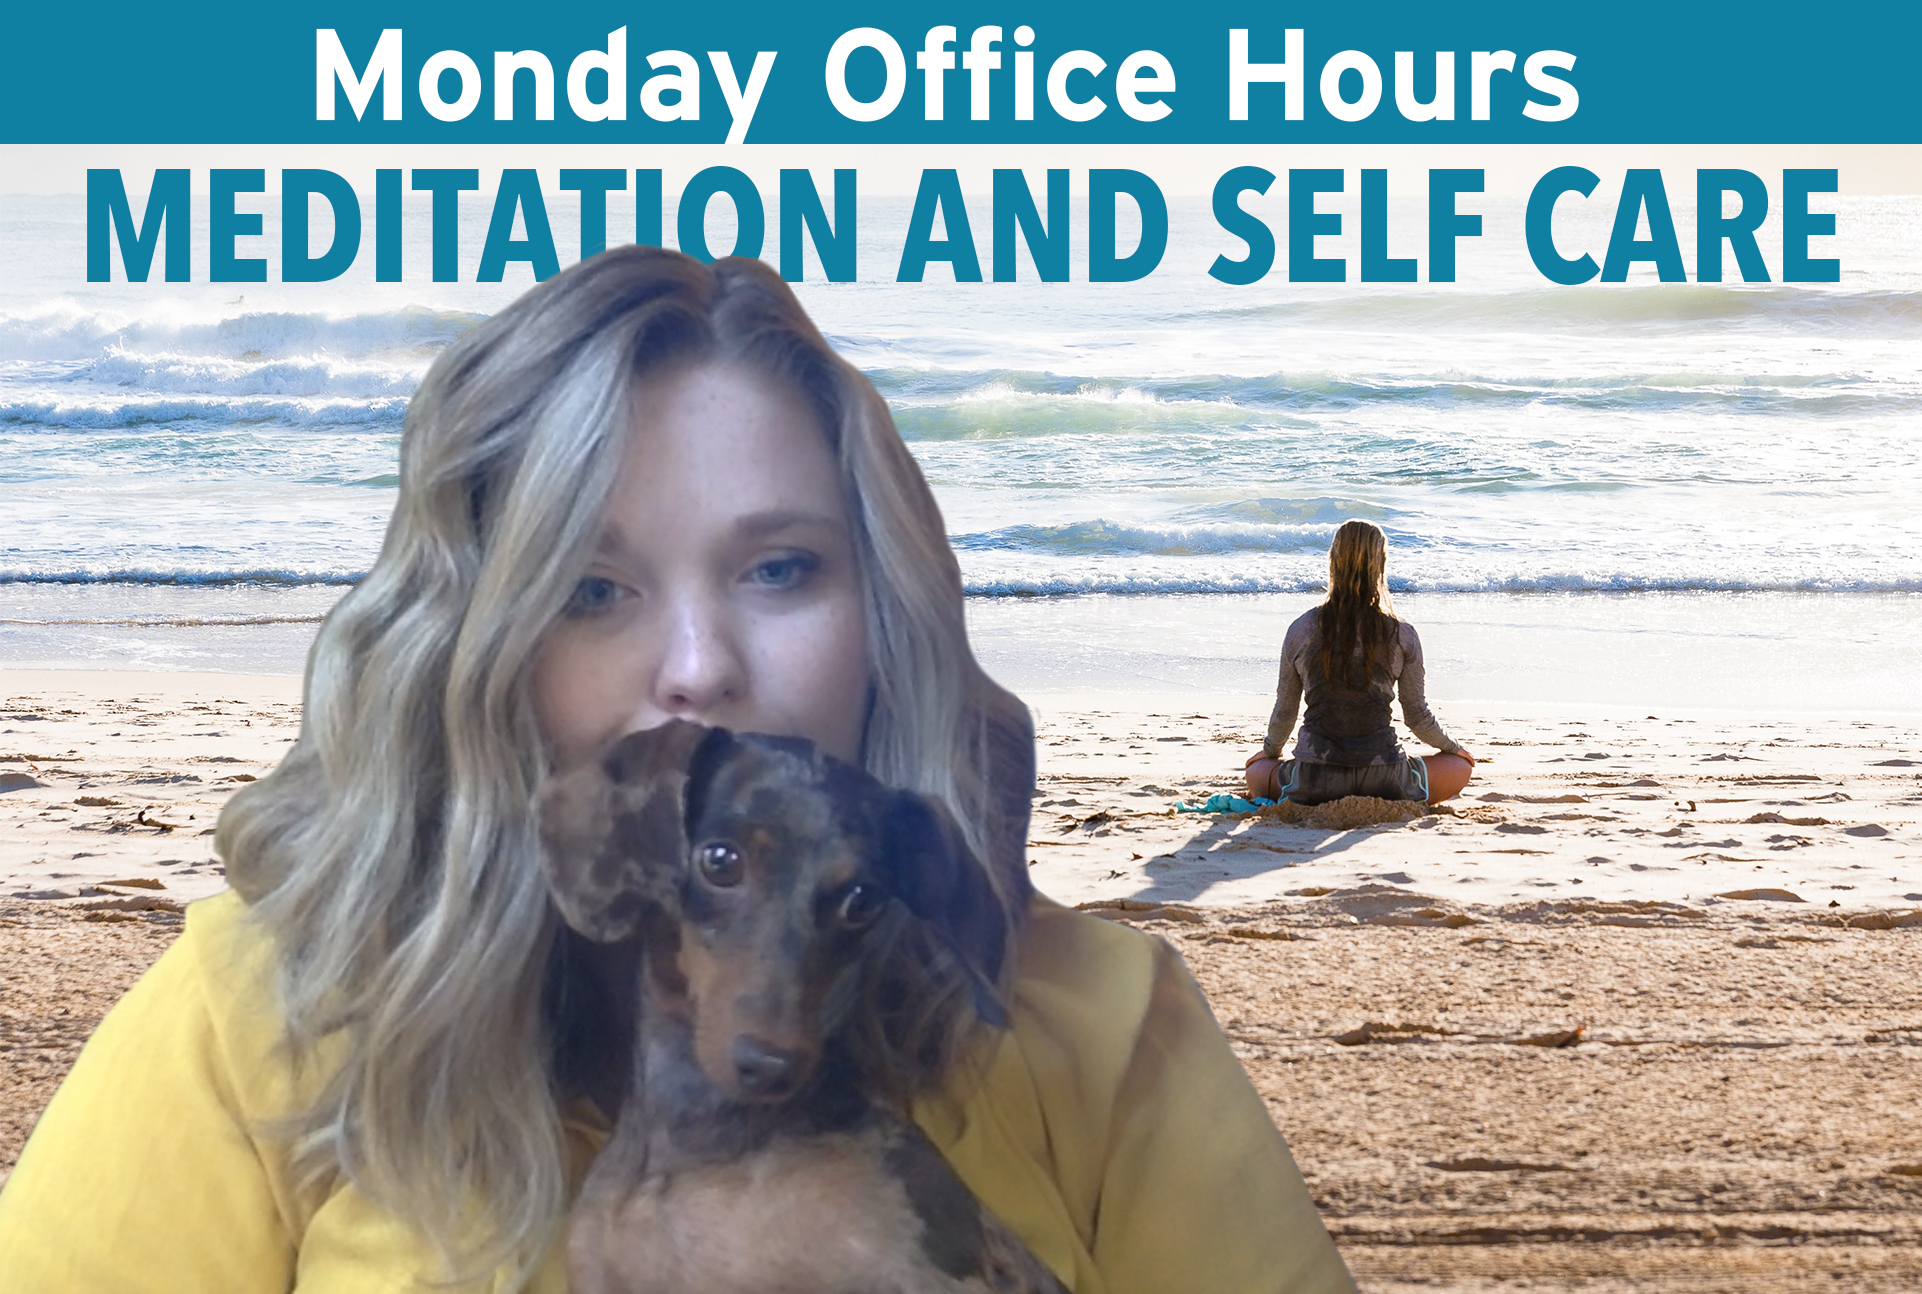 WATCH: Monday Office Hours, Episode 3: Meditation and Self Care